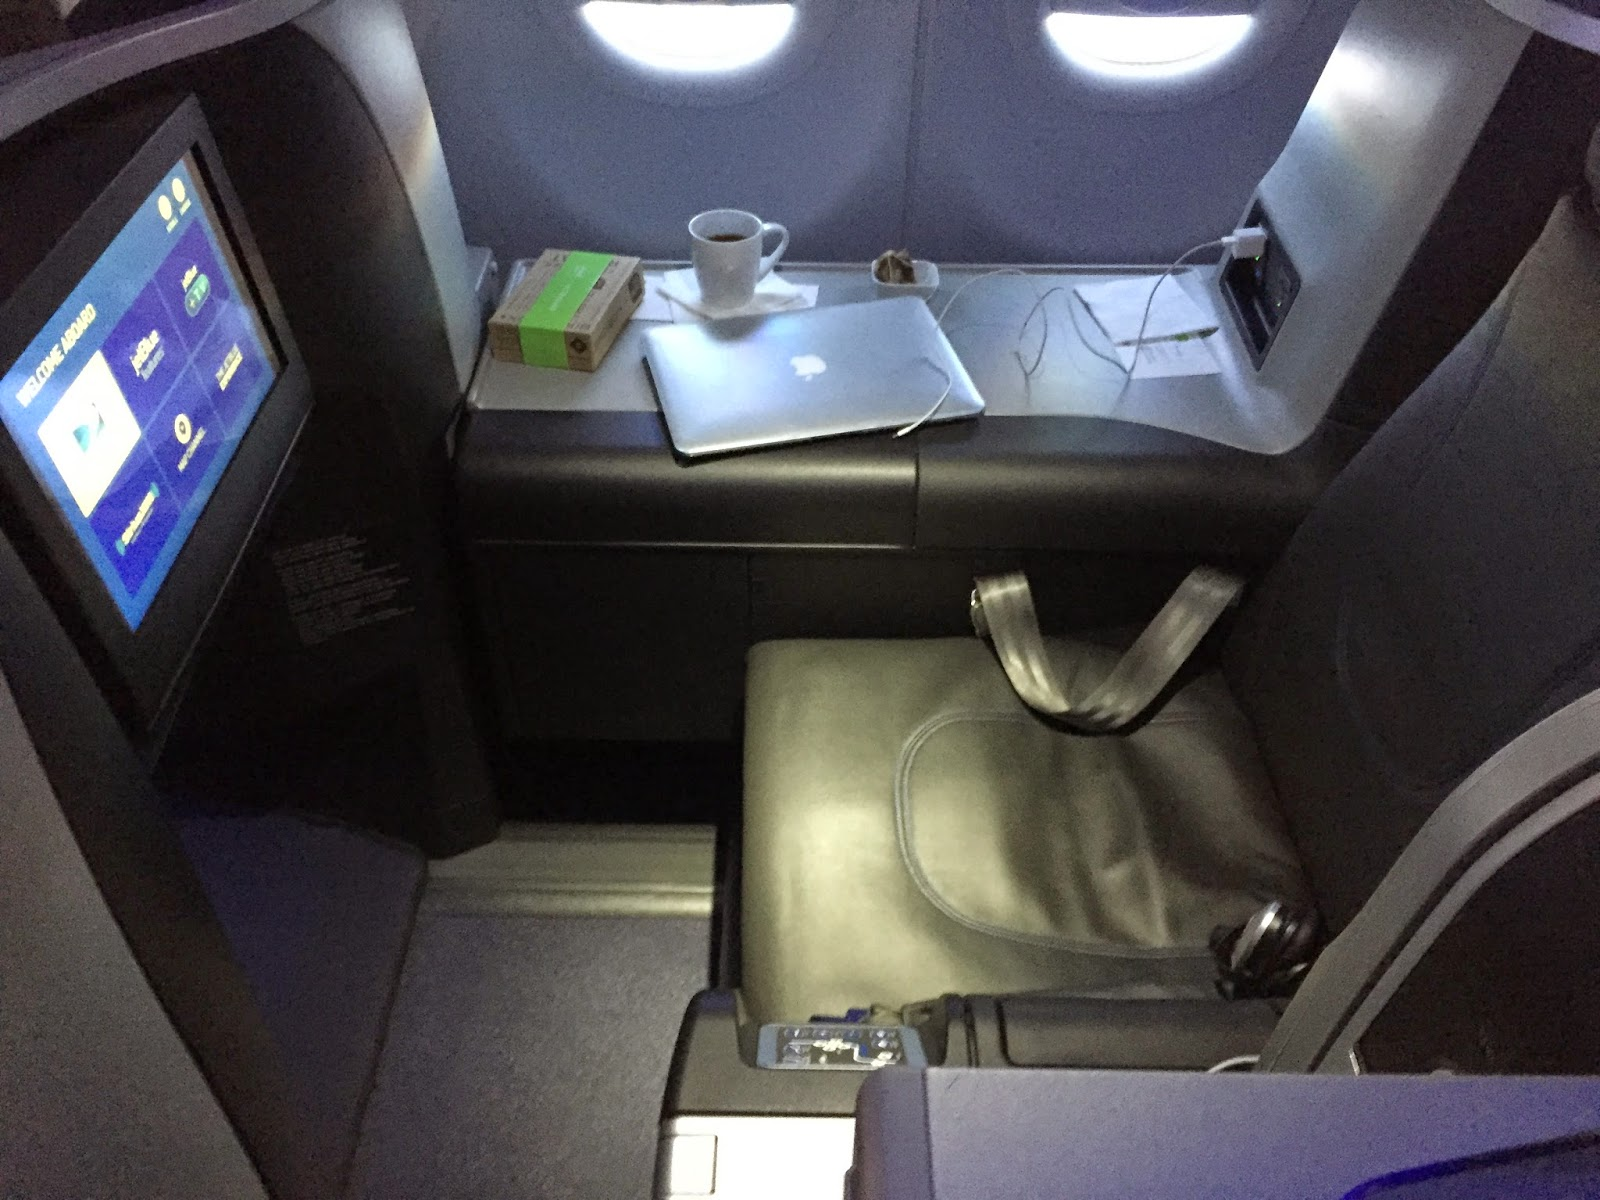 Mint Is A 16 Seat Business Class Cabin With Lie Flat Beds Available Starting At 599 Each Way On Specially Configured Aircraft JetBlue Expanded The